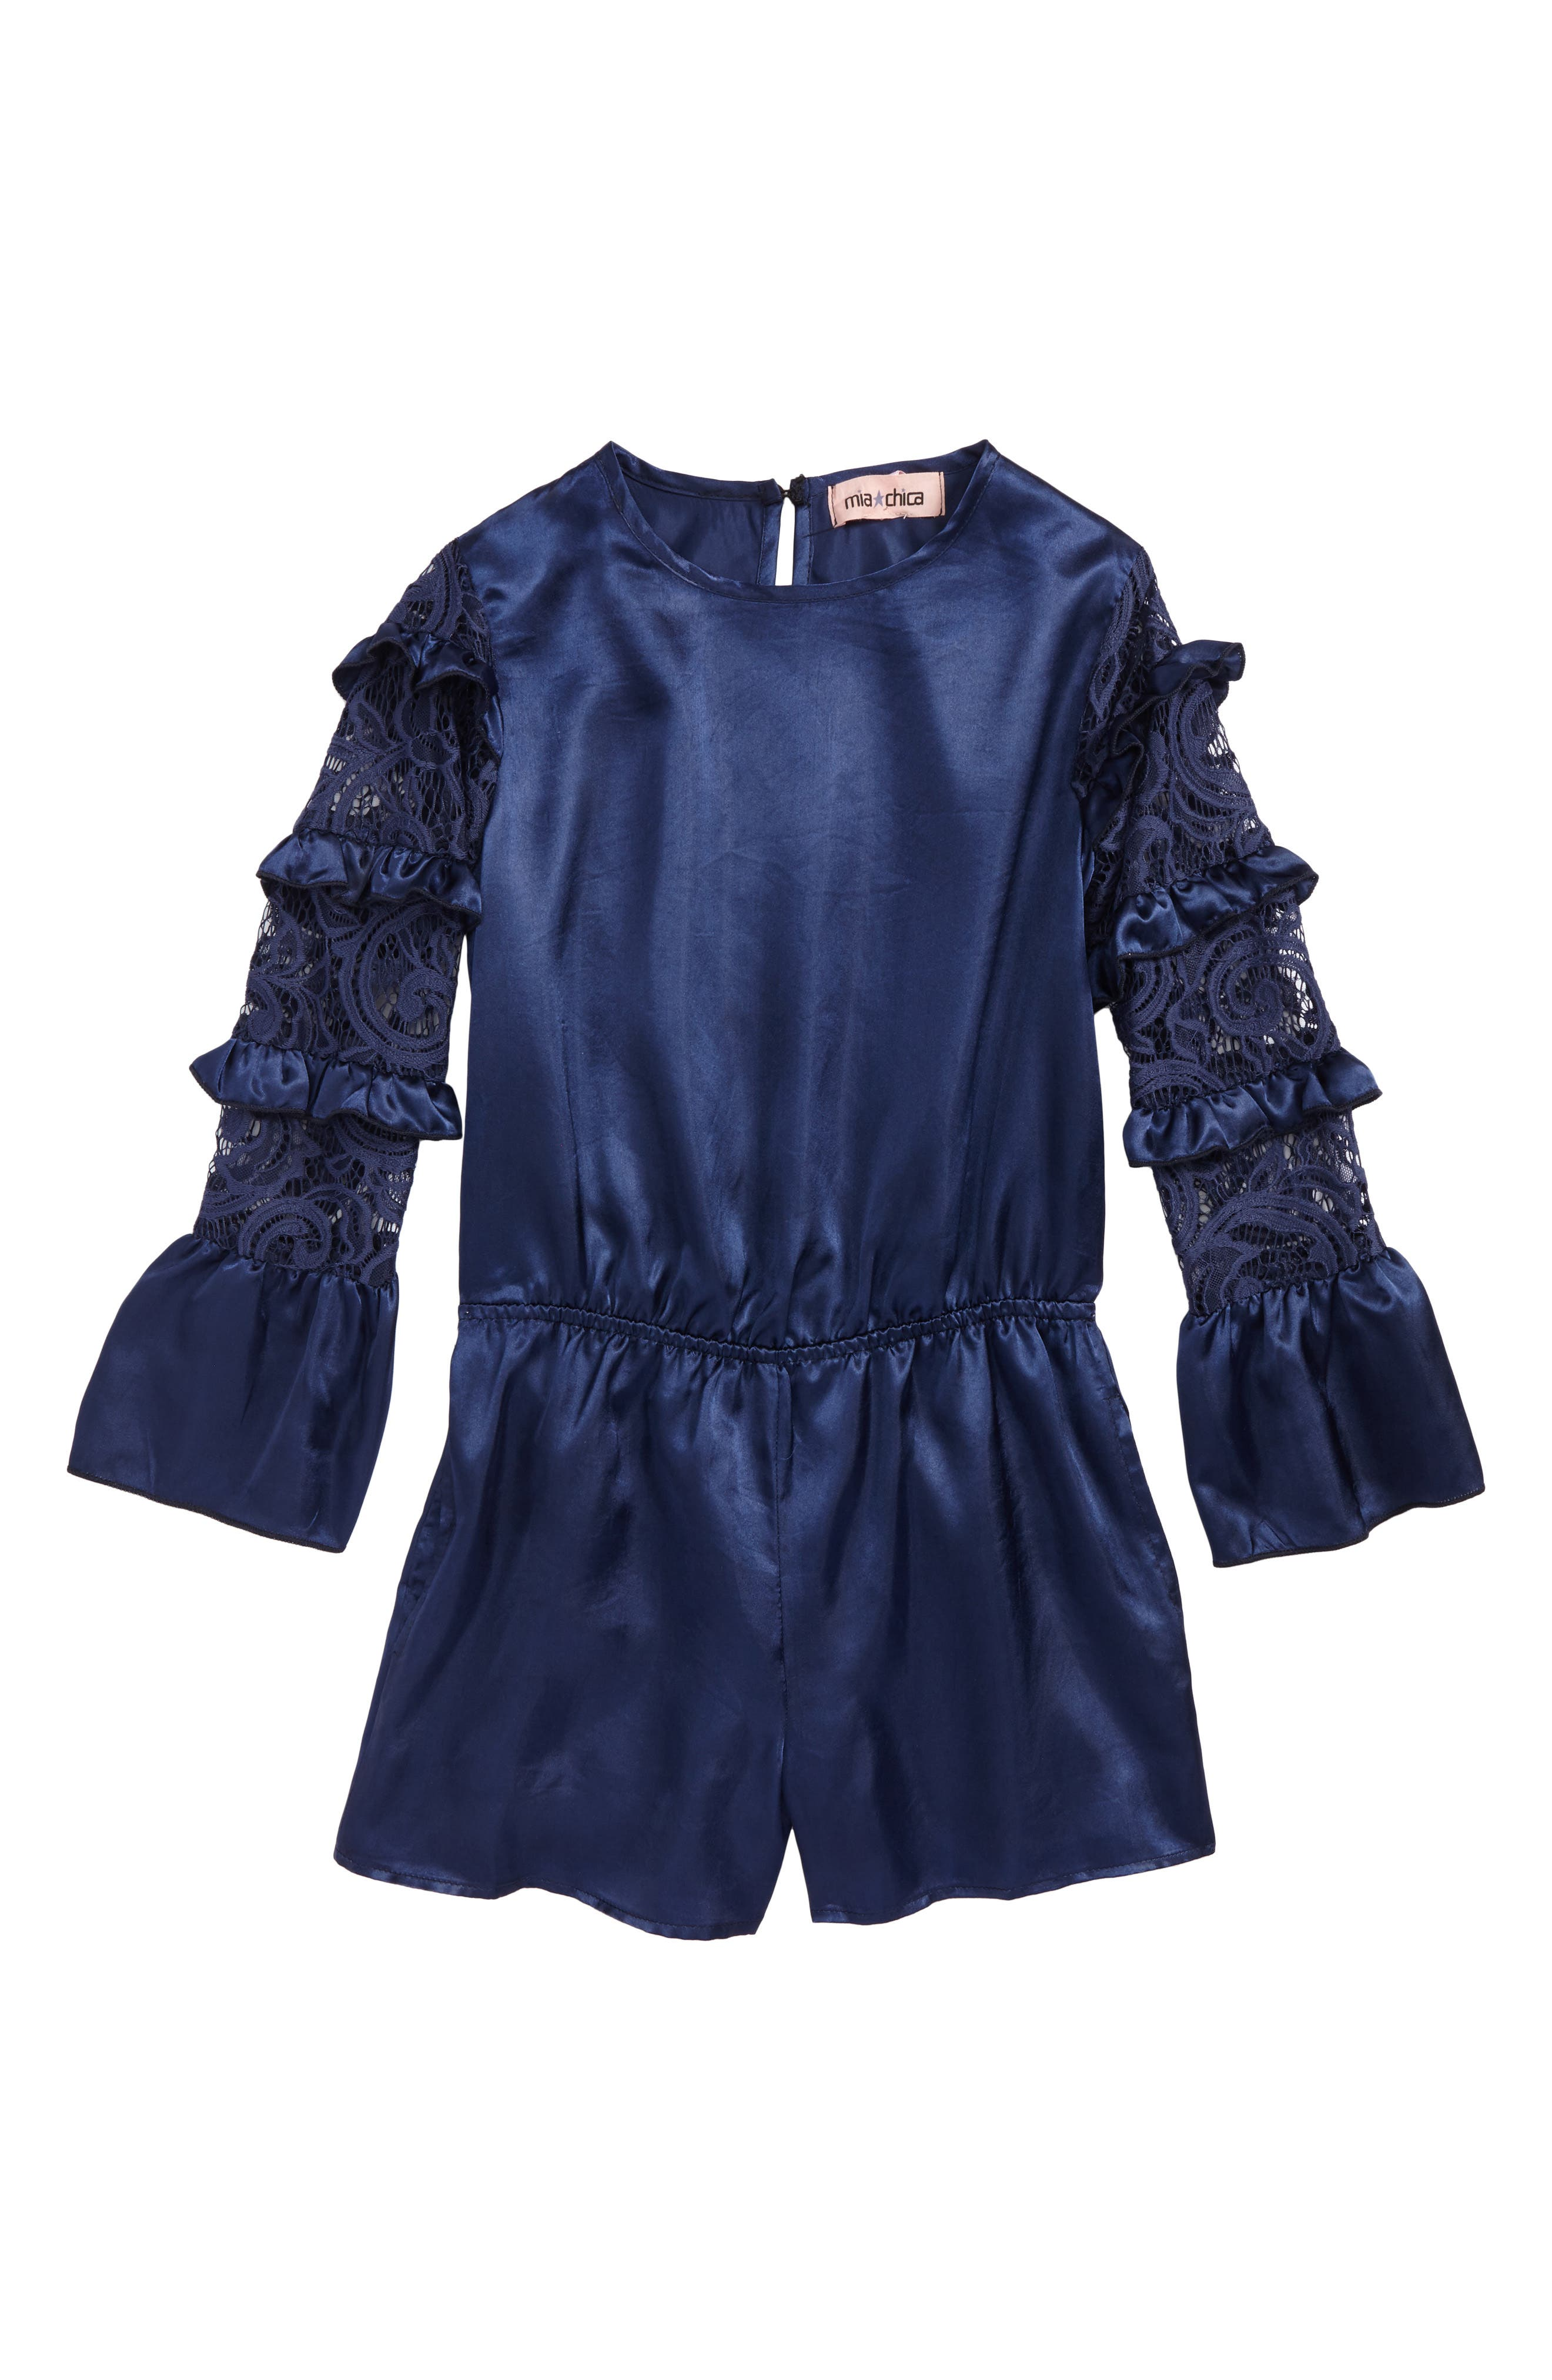 Lace Sleeve Satin Romper,                             Main thumbnail 1, color,                             410